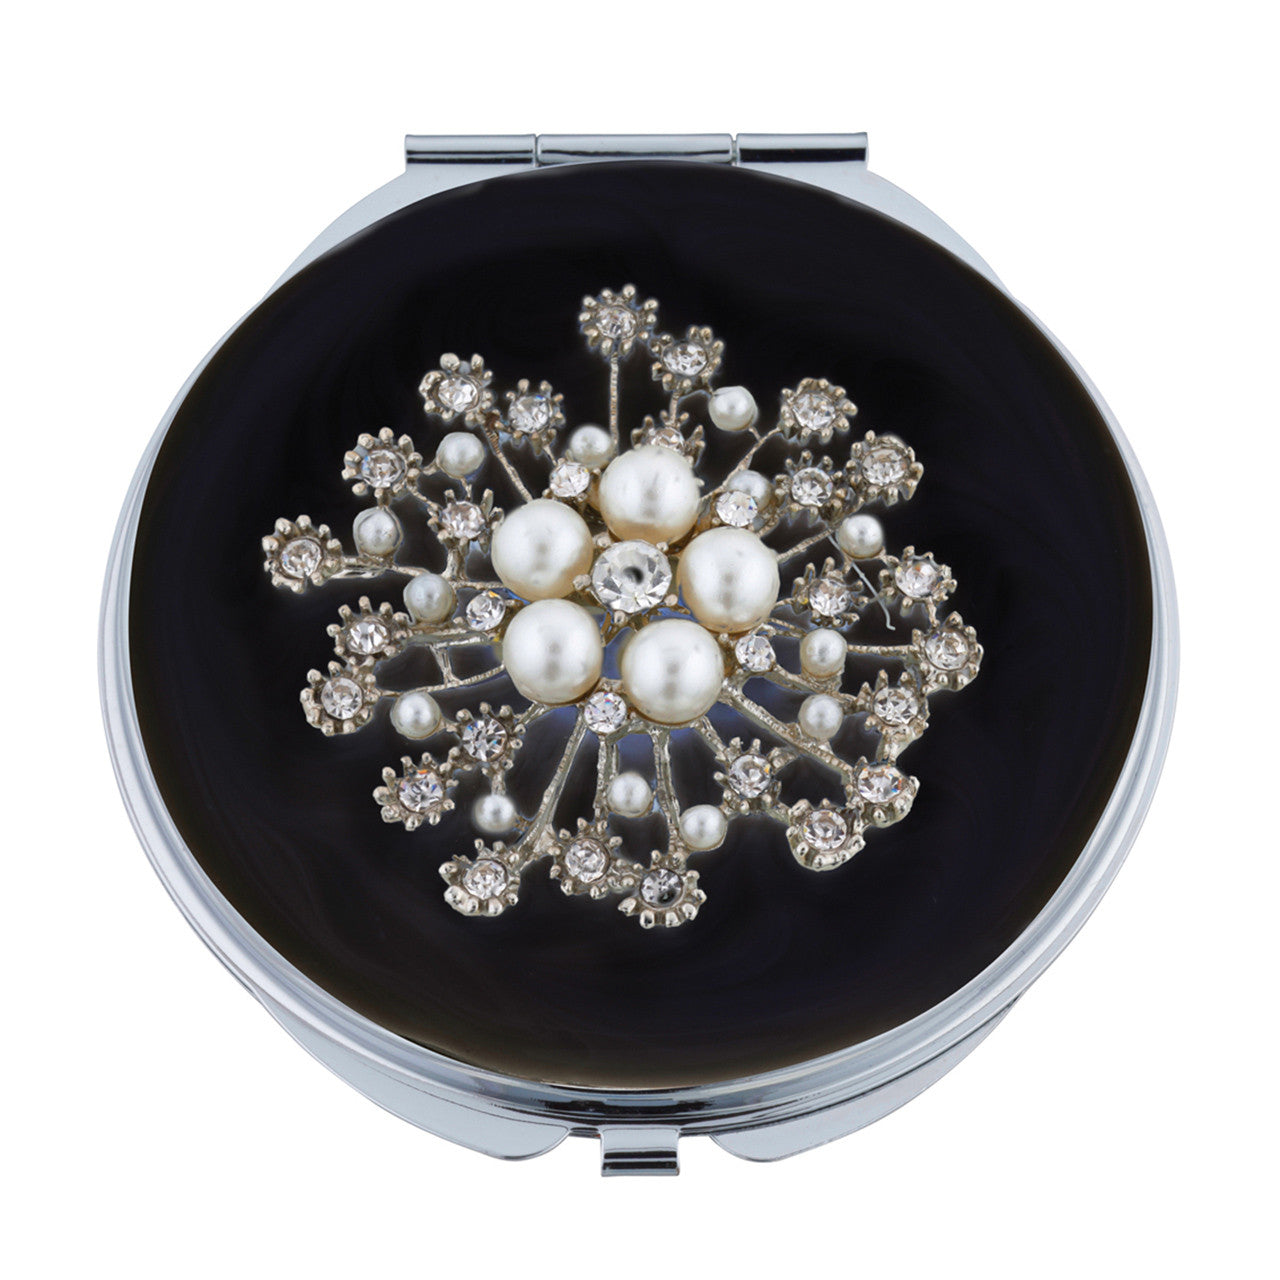 Pearl & Crystal Mirror Compact